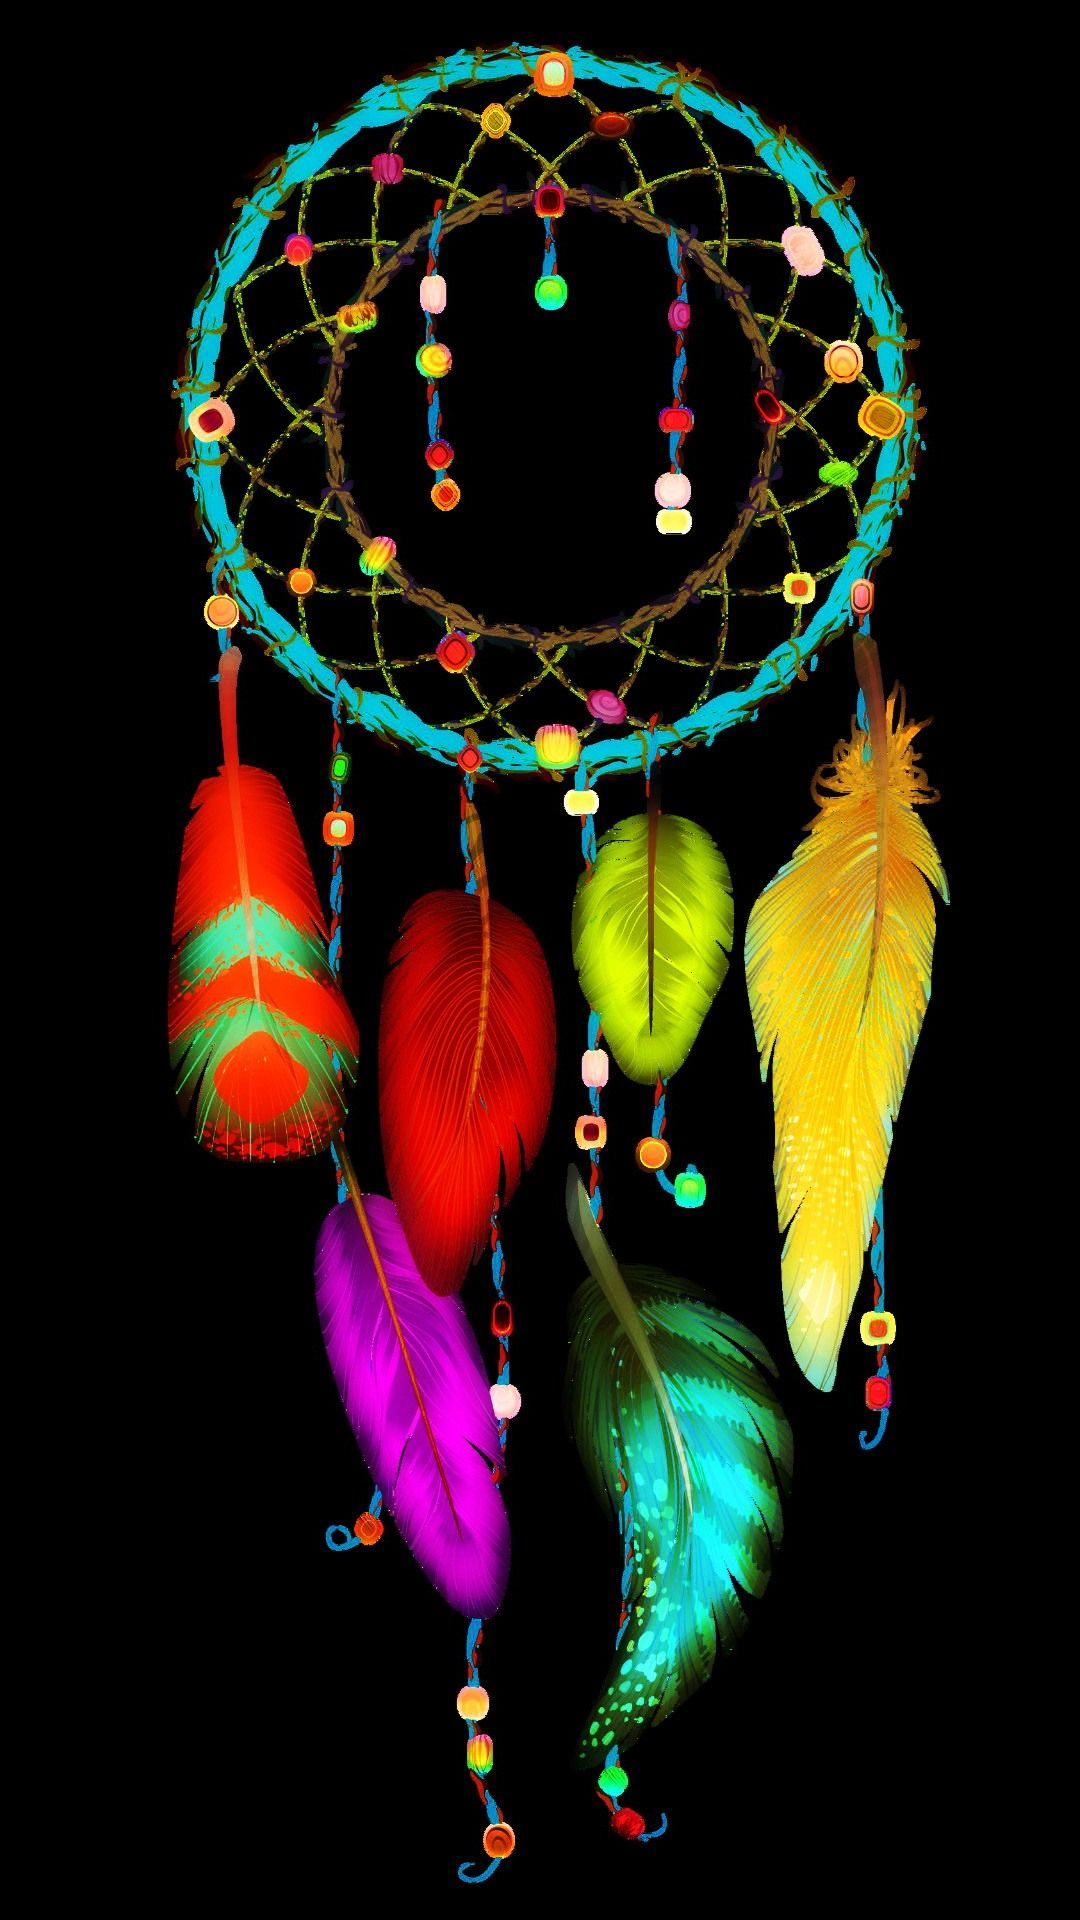 Pin by Susan on Native American in 2019 Dreamcatcher